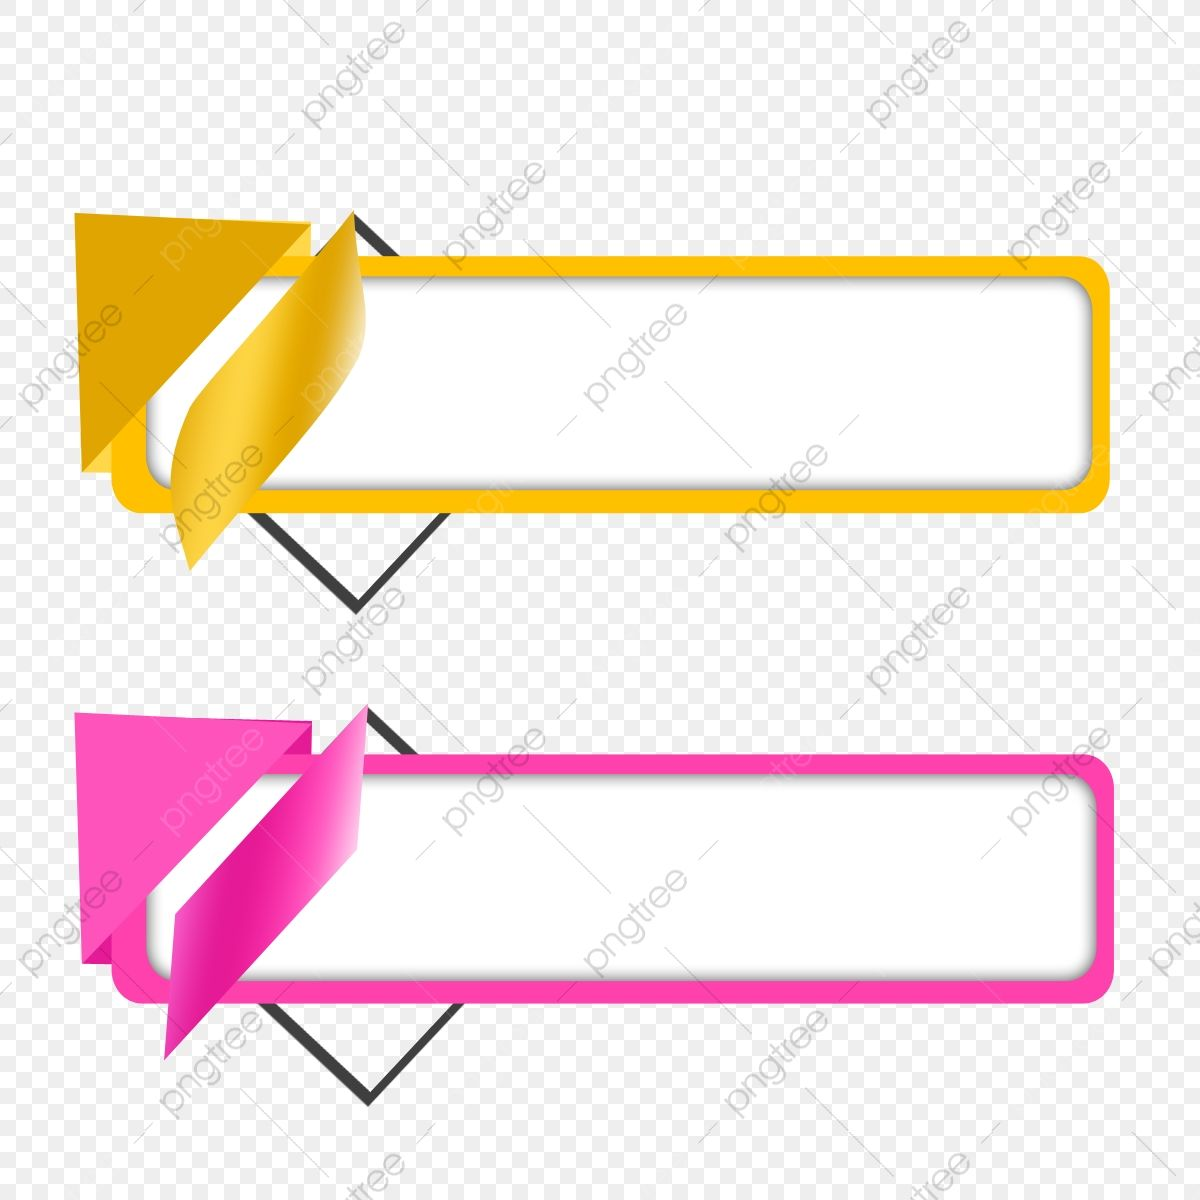 Vector Text Box Banner Design Box Clipart Rectangular Blank Border Colorful Concept Png Transparent Clipart Image And Psd File For Free Download Banner Design Background Banner Geometric Background